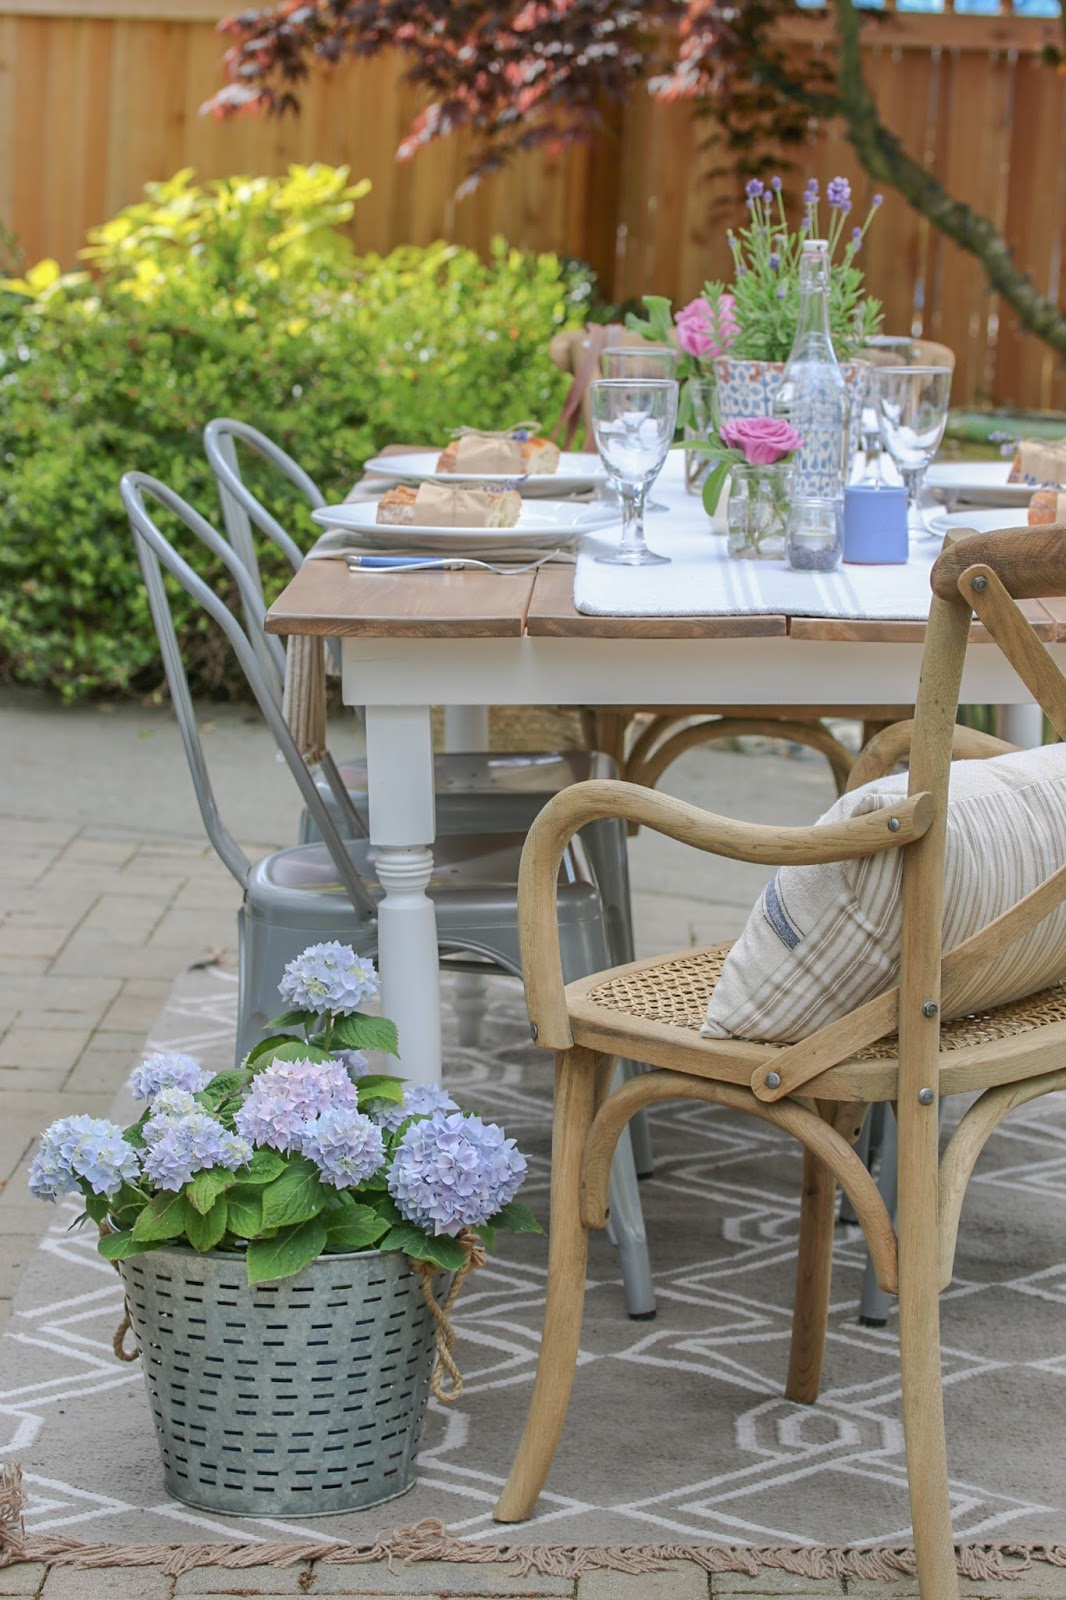 diy farmhouse table on patio with pretty table setting